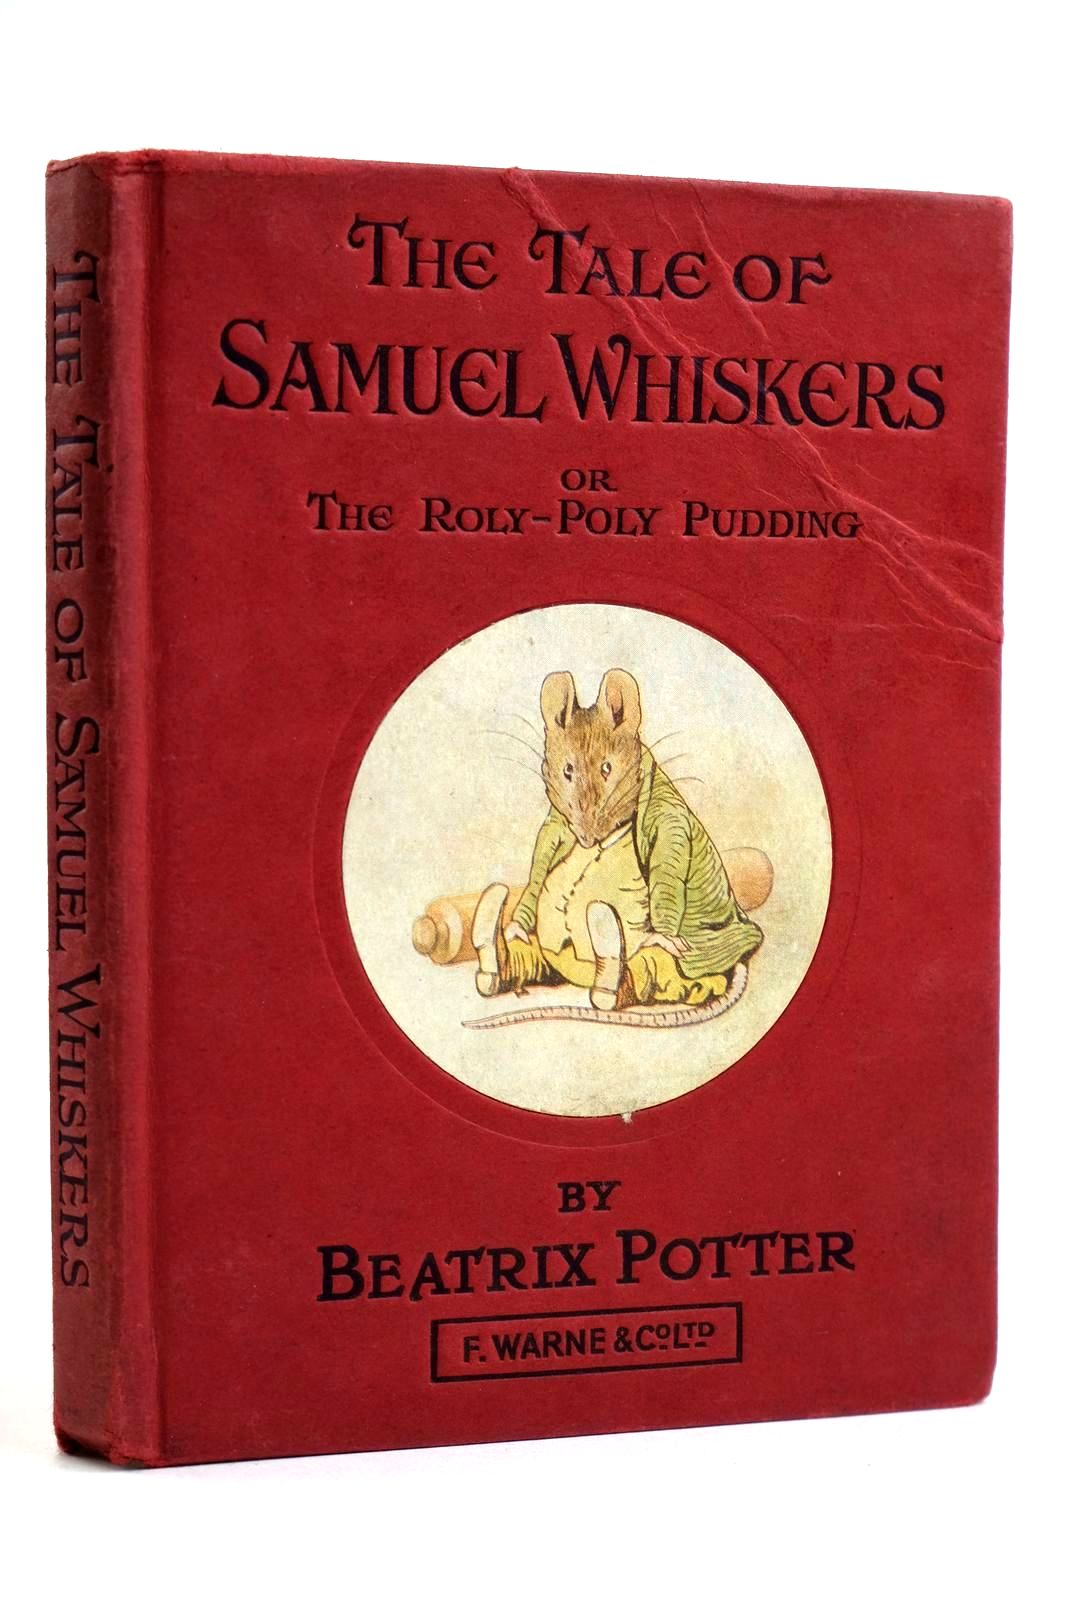 Photo of THE TALE OF SAMUEL WHISKERS OR THE ROLY-POLY PUDDING written by Potter, Beatrix illustrated by Potter, Beatrix published by Frederick Warne & Co Ltd. (STOCK CODE: 2132071)  for sale by Stella & Rose's Books